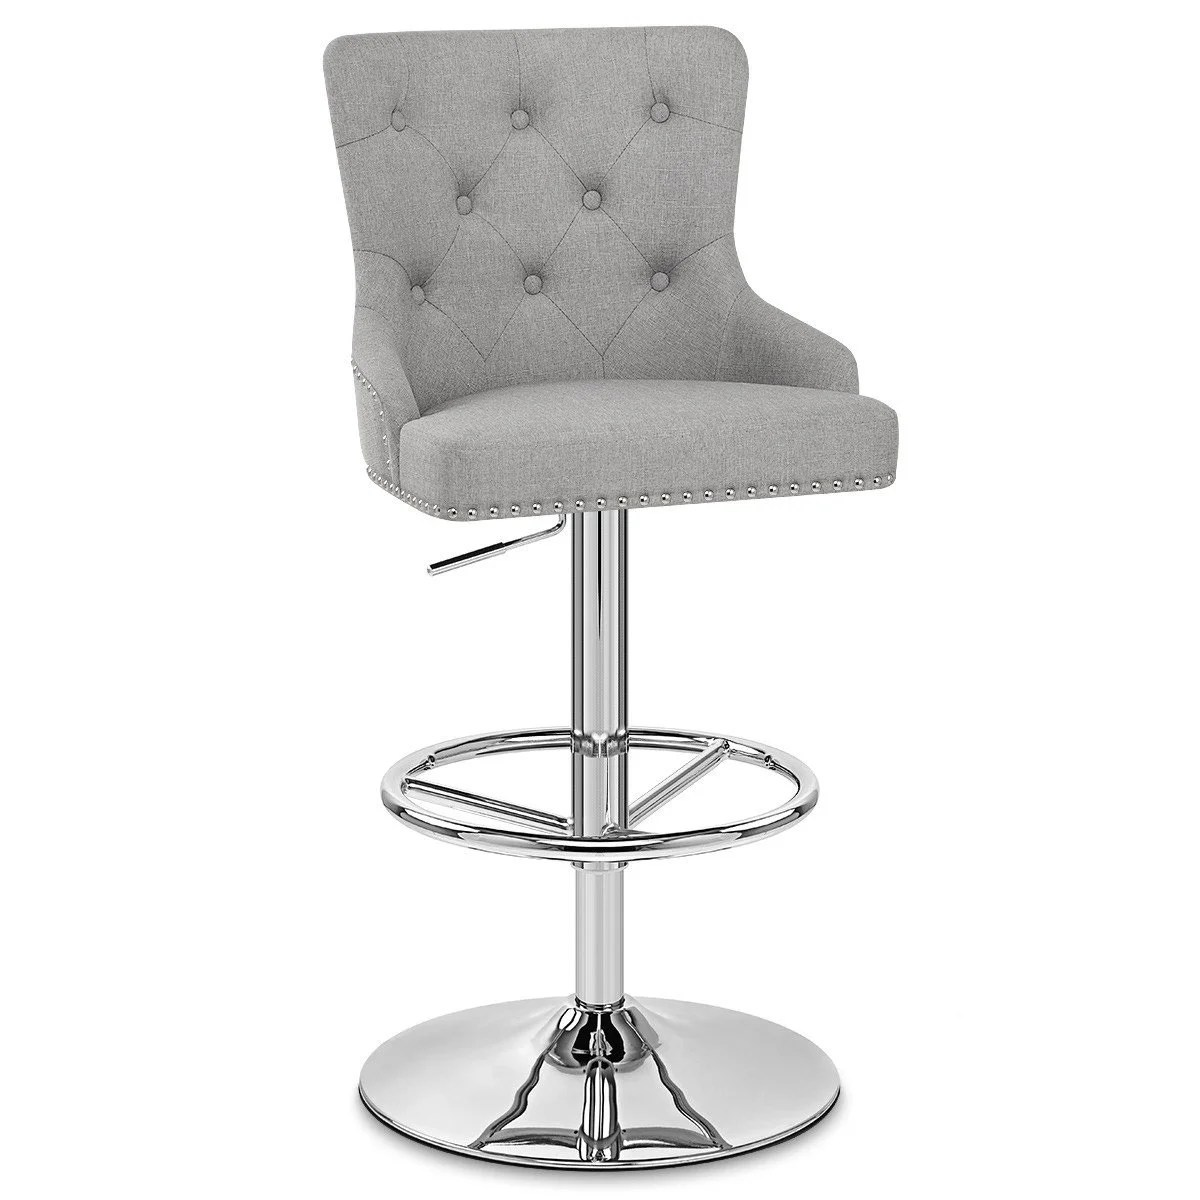 Tabouret De Bar Gris Clair Tabouret De Bar Design Textile Gris Clair Manor